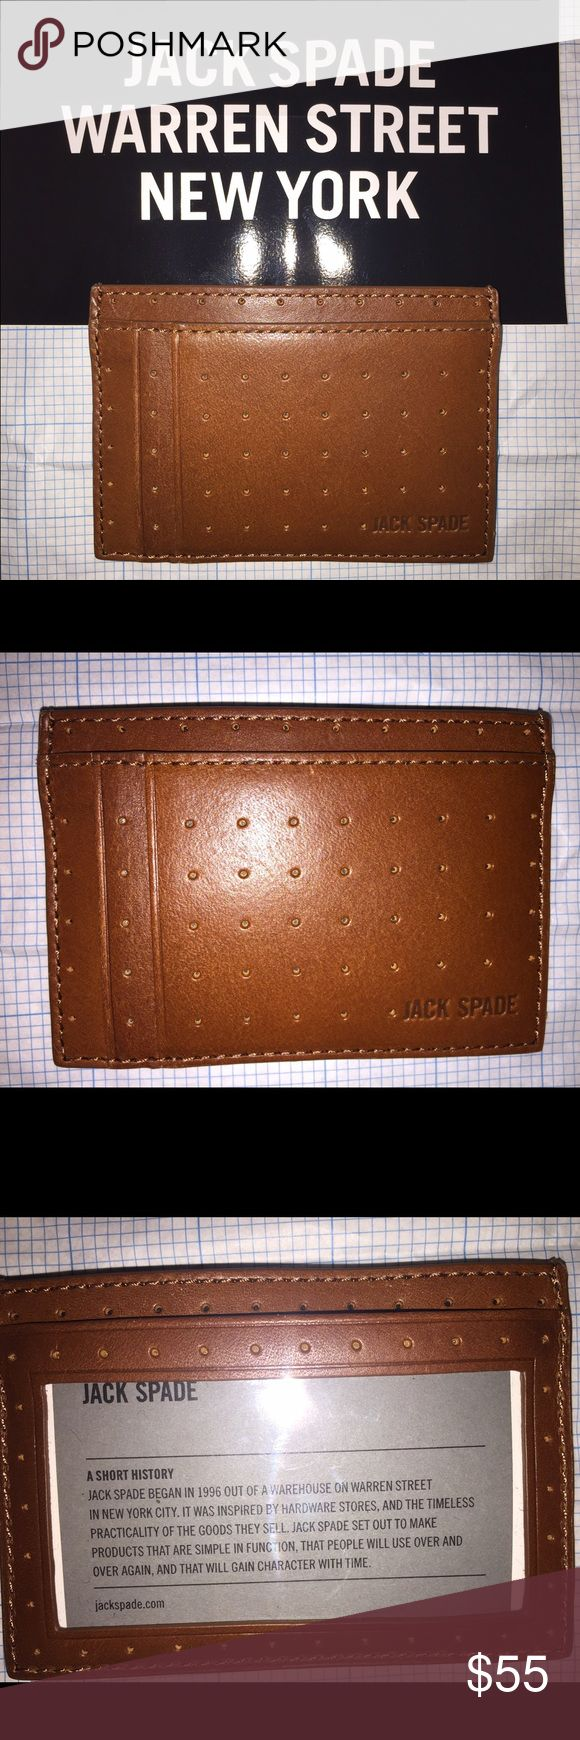 Jack Spade Leather Wallet Cardholder Beautiful Jack Spade leather perforated wallet/cardholder. Brand new with tags! (This is the male line from Kate Spade) Jack Spade Bags Wallets